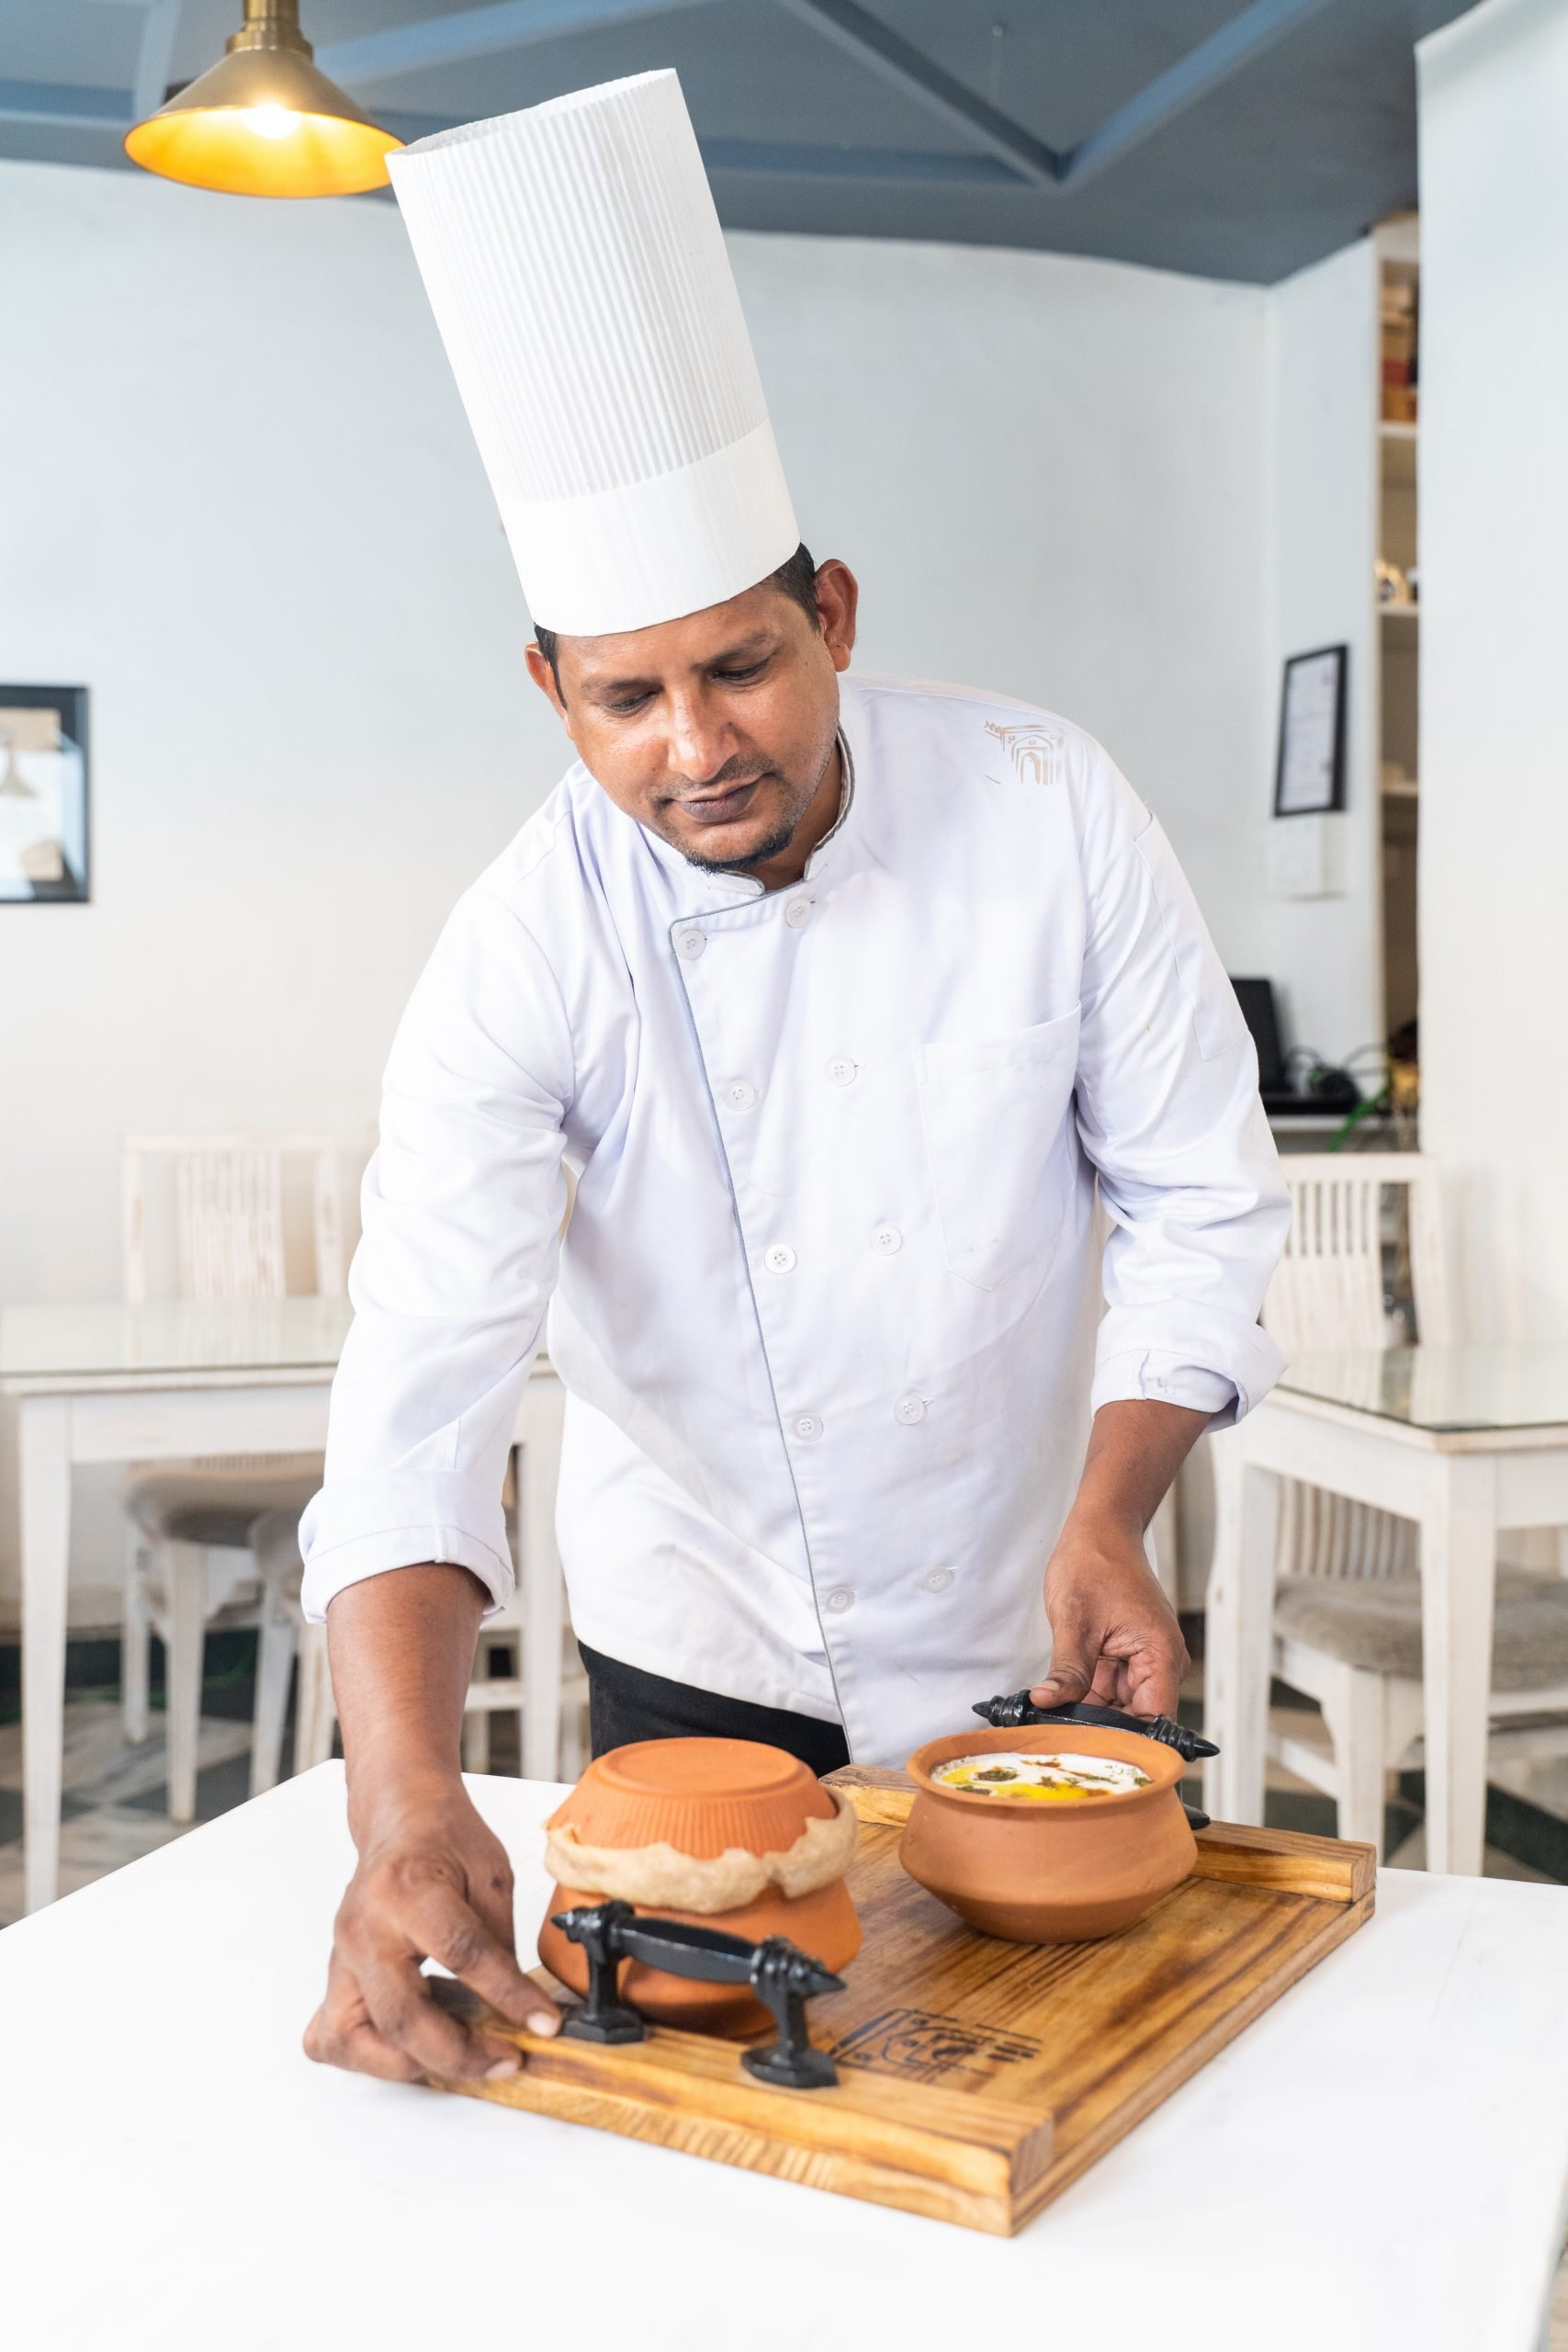 Chef serving food in restaurant